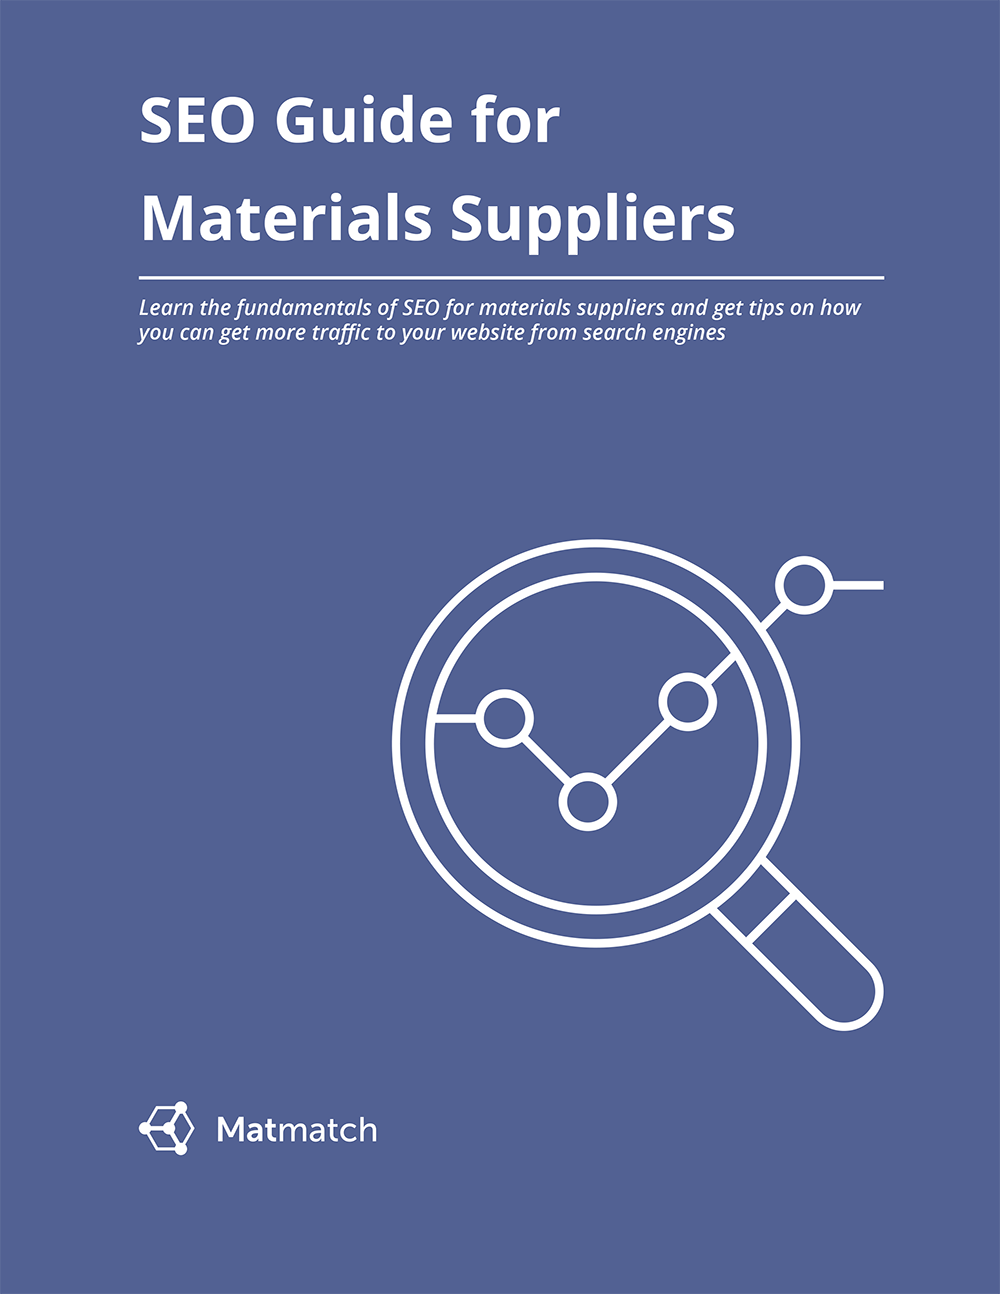 SEO-Guide-for-Materials-Suppliers-cover